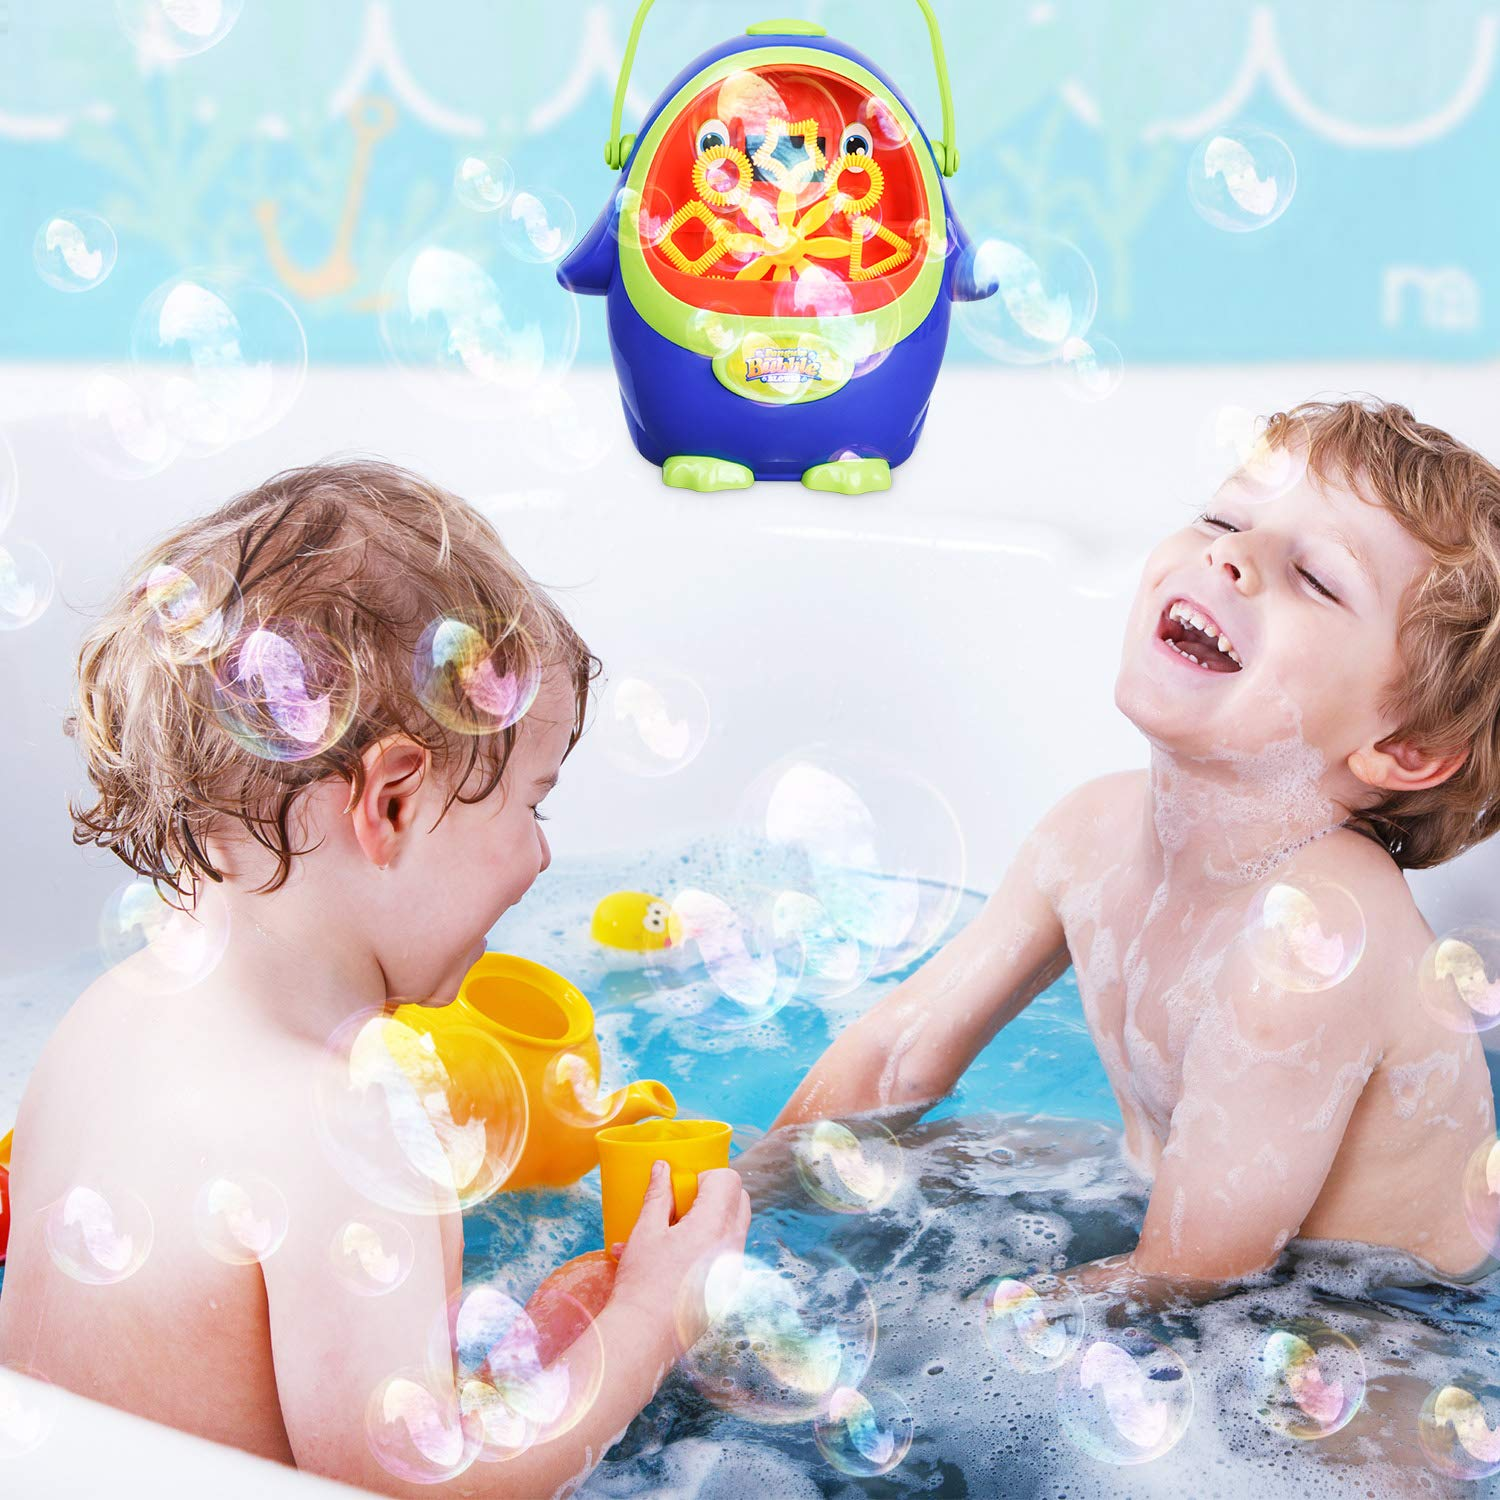 Bubble Machine - Automatic Bubble Blower with Bubble Solution for Kids Toddlers, Portable Bubble Maker with Bubbles Solution for Party, Wedding, Outdoor and Indoor Use, Battery Operated, Penguin Shape by LOYO (Image #2)